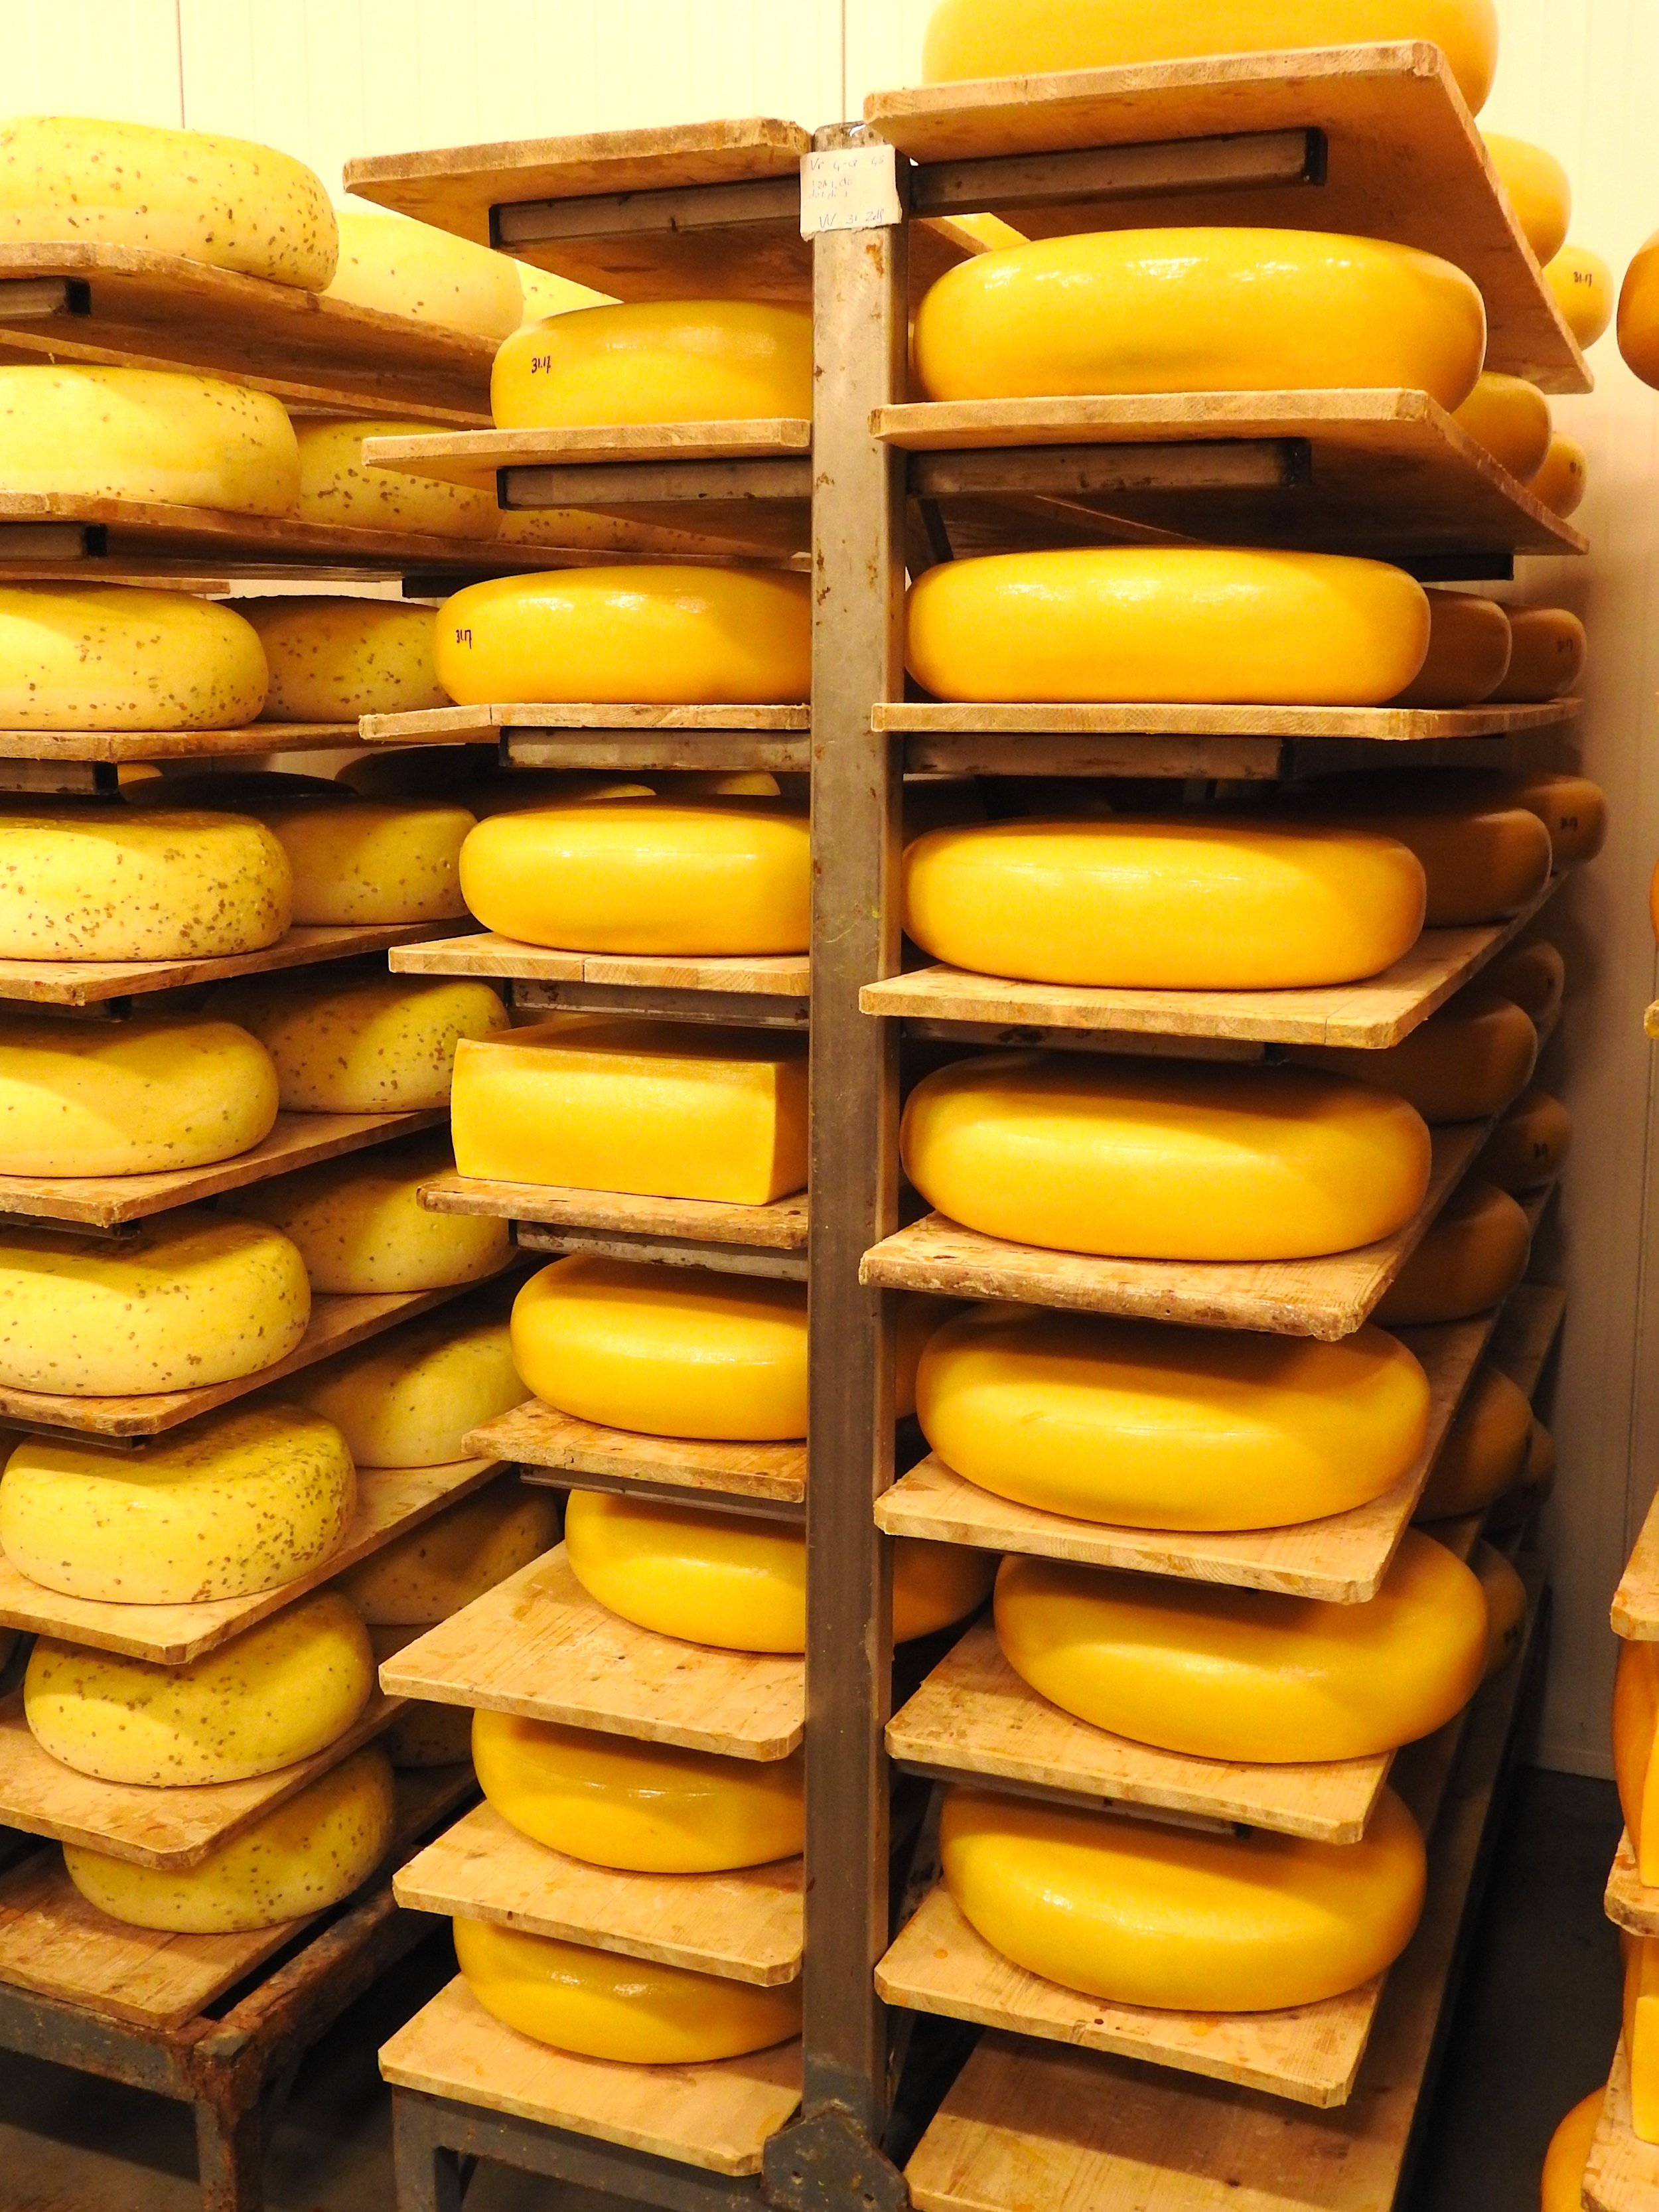 Gouda drying on wooden shelves for 2-3 weeks.